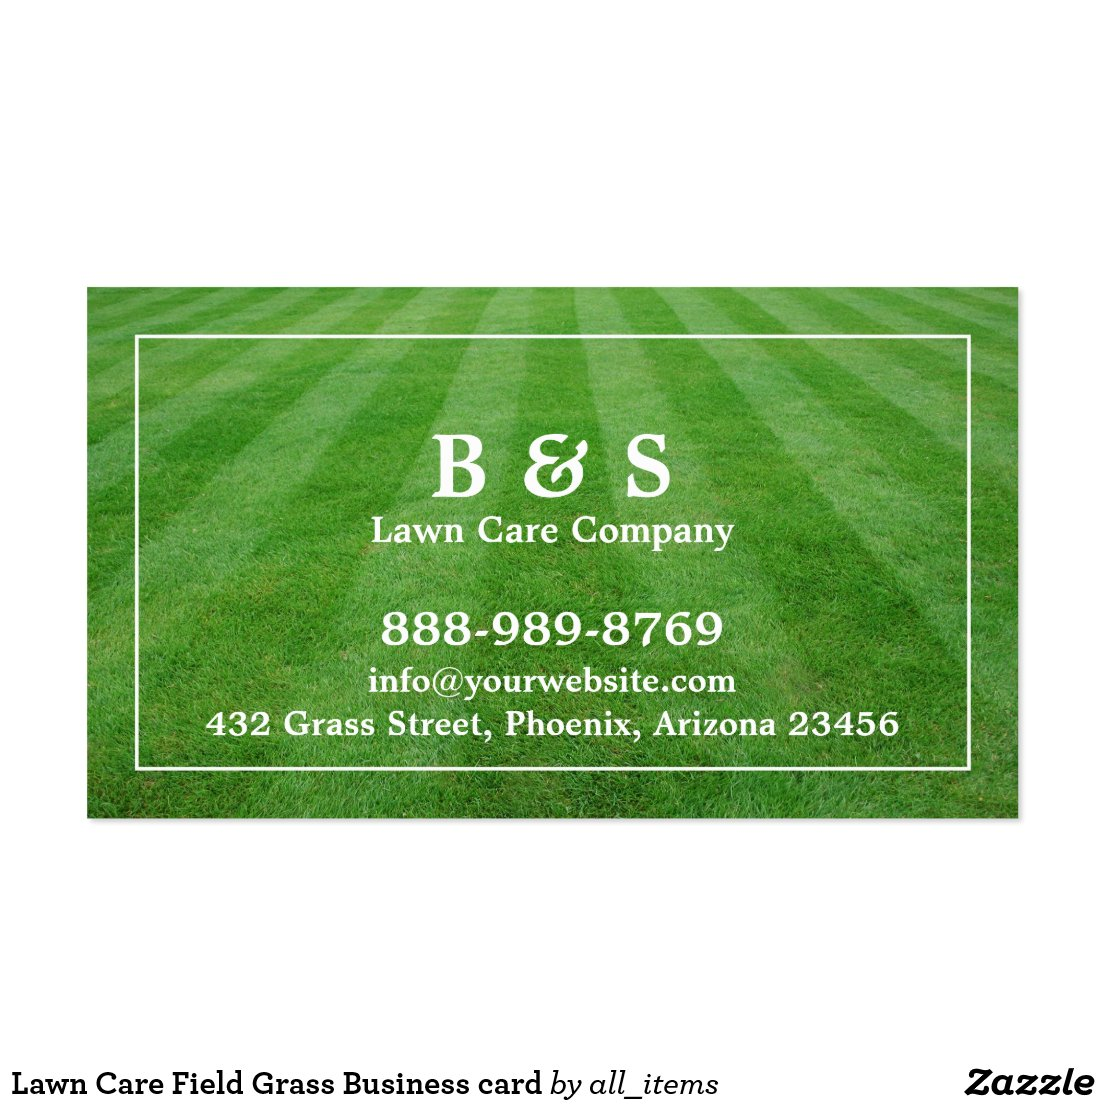 lawn service business card sayings - Lawn Service Business Cards